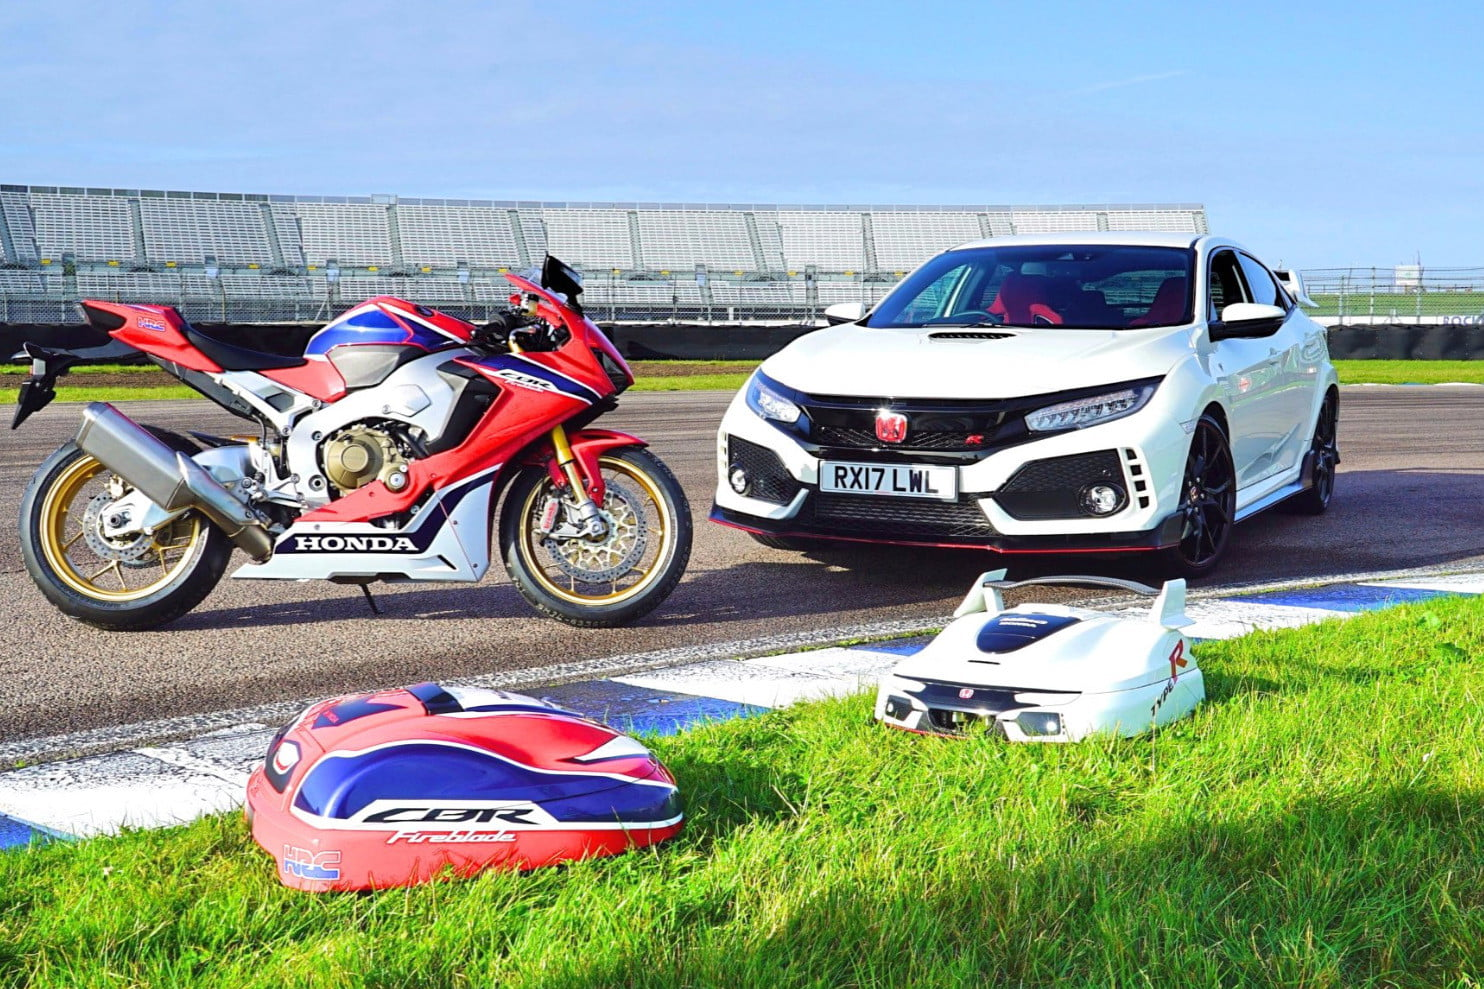 Hondas Miimo Type R Smart Mower Takes After The Civic Hot Hatch